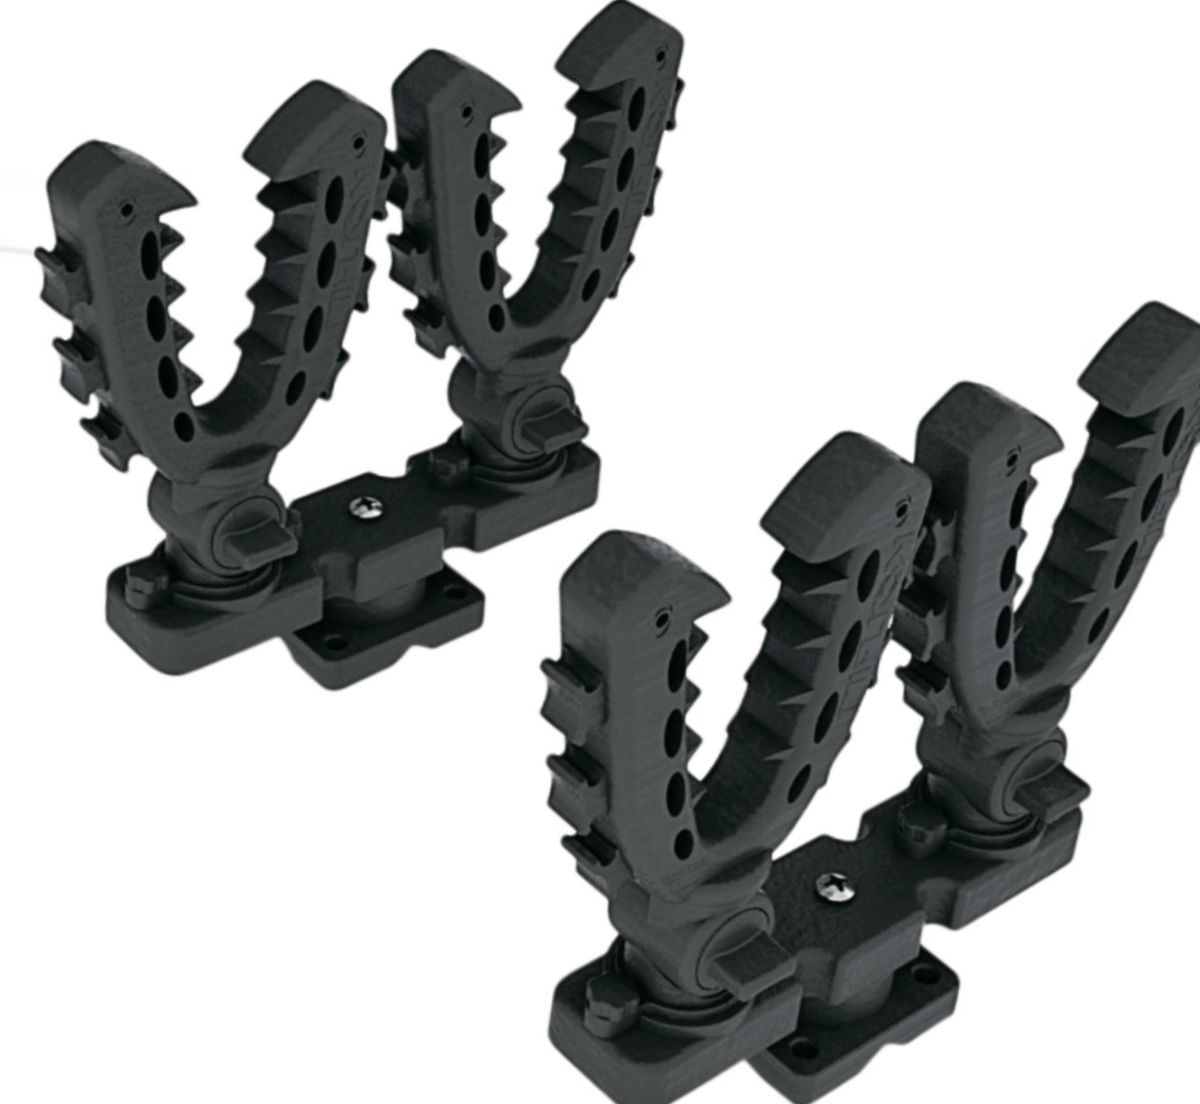 Kolpin® Rhino Grip XL Gun Mounts